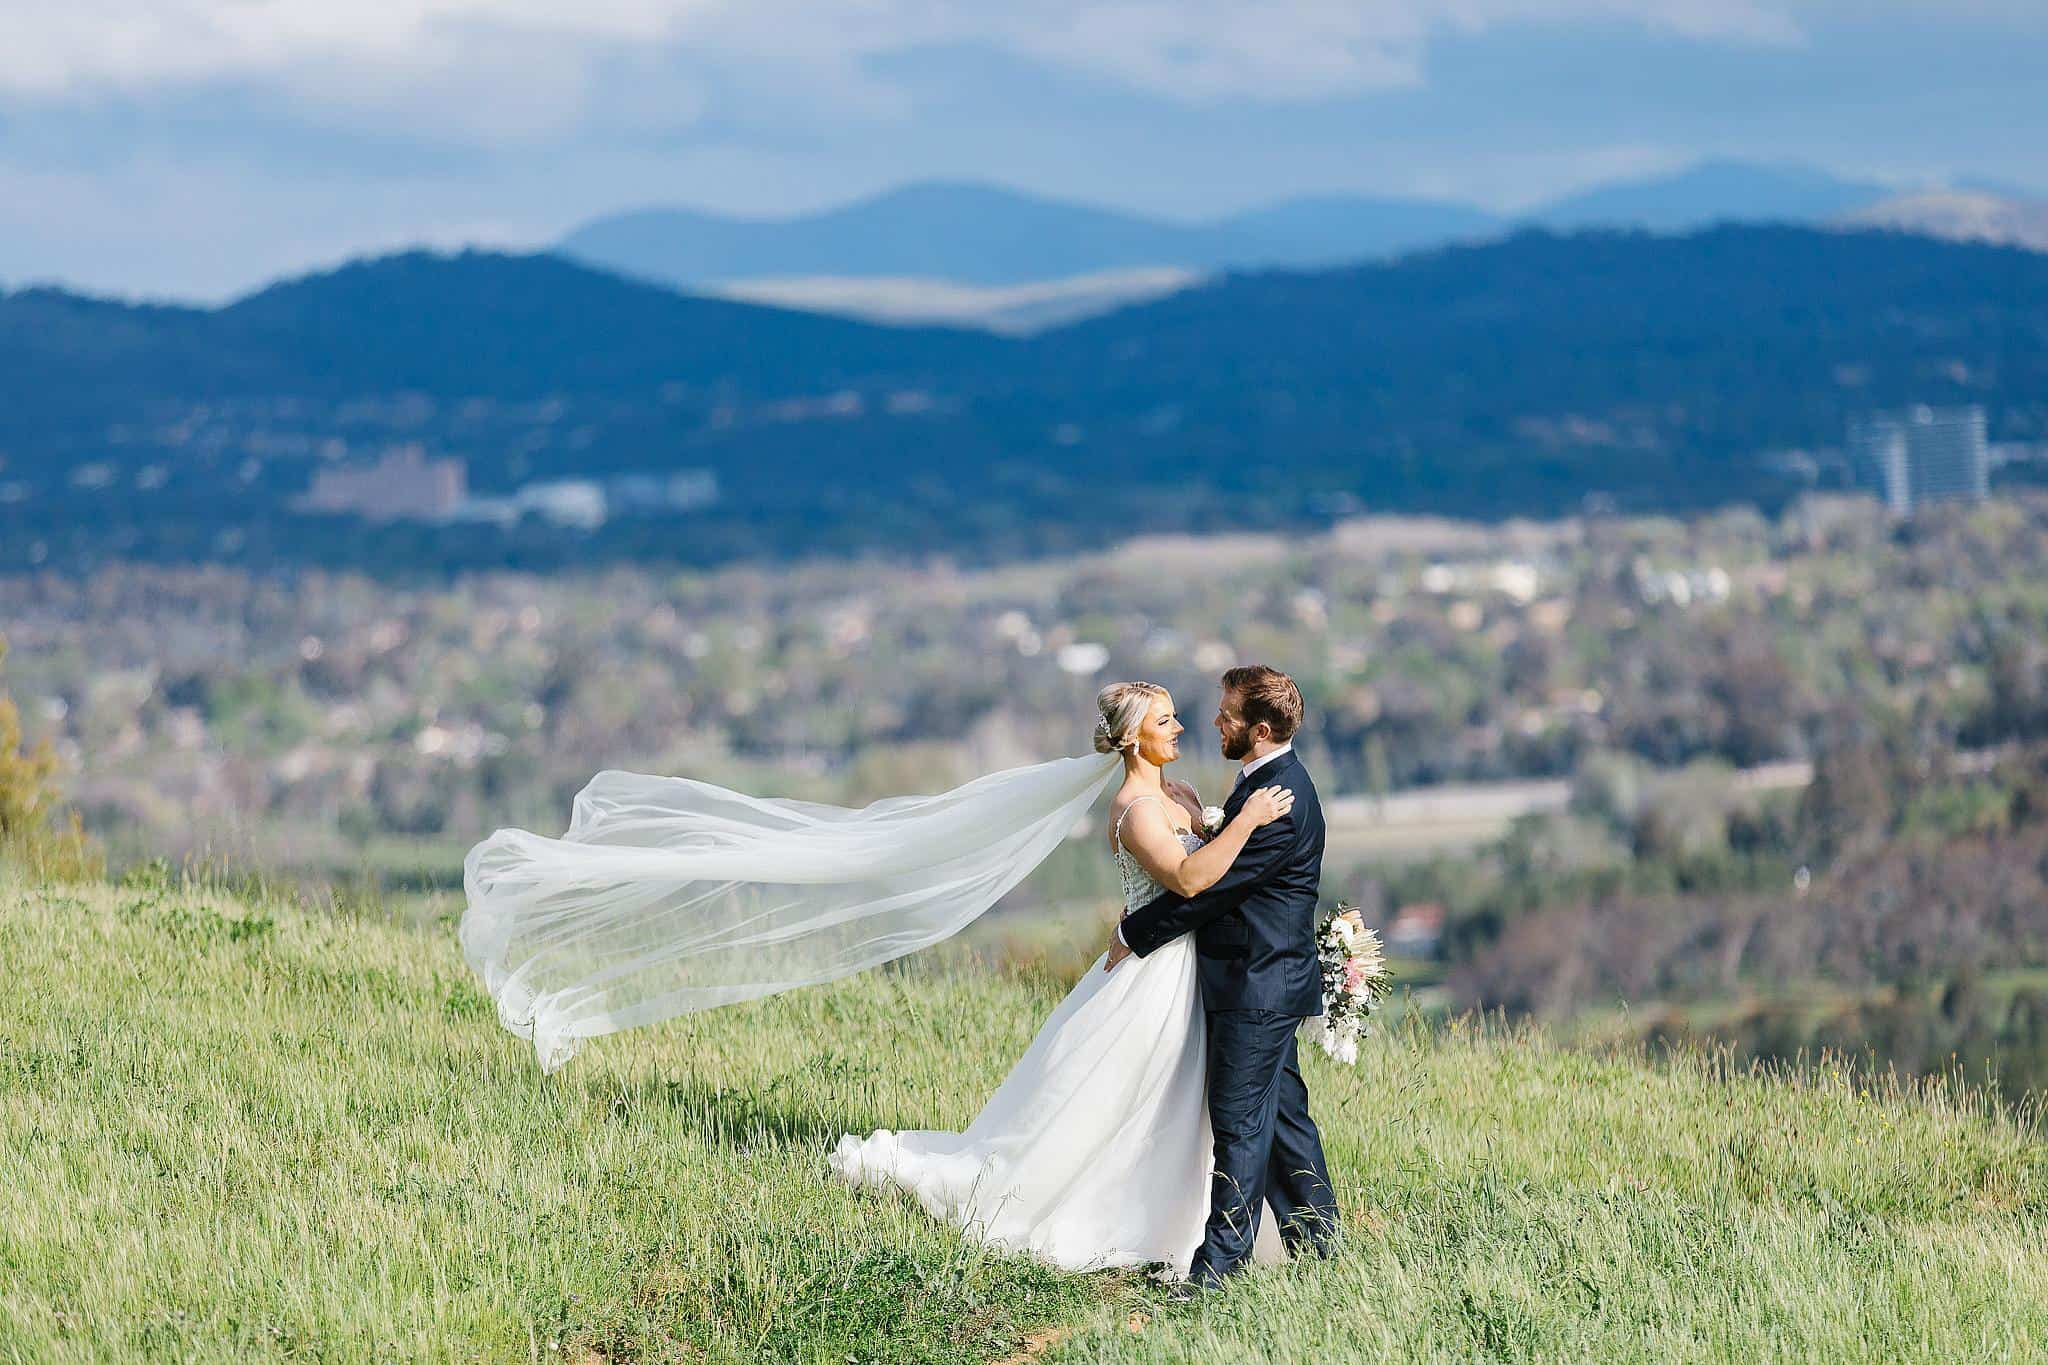 Bride and groom share intimate moment with mountains in the background